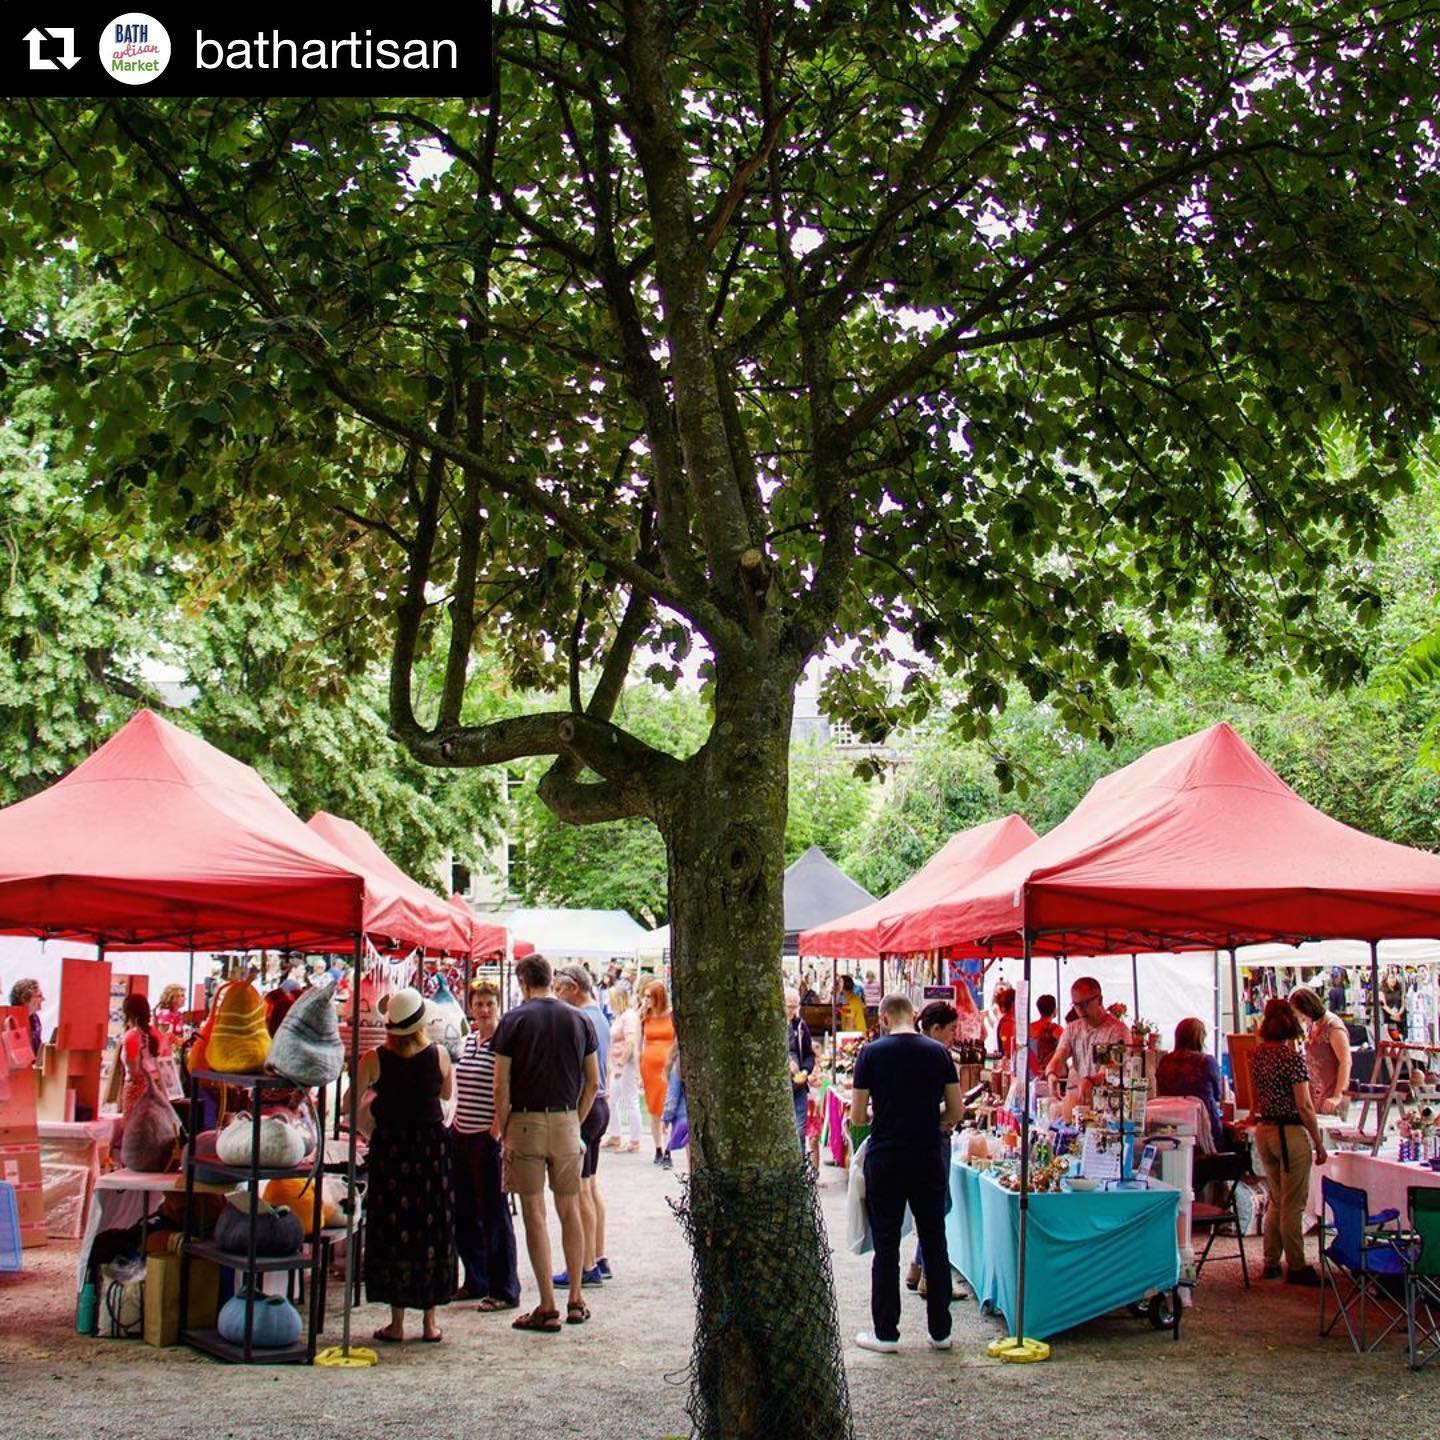 #Repost @bathartisan with @get_repost・・・Although we are missing Queen Square, Having the opportunity to explore new ways of continuing our events has been so rewarding, and something we can certainly take forward and utilise in the future. Please help support the small businesses taking part in Saturdays Virtual Market by watching our stories from 2pm and joining our Facebook virtual market Group (link in Bio) Here are just a few of the traders you'll find, please do take a peek, and a follow is always hugely appreciated. If you're not looking to buy anything, feel free to just scroll through and browse the lovely things on offer. .@smouk_interiors @gingerandtweed @gemma.atwell.jewellery@thisistobeloved @pulp_paper_heaven@simonwebbartisan@wellbeingbristol@bee_happy_glass_designs @graceandhartland @coastalcreativitybycath @kasasagi.jewellery @borntobuild_ideas